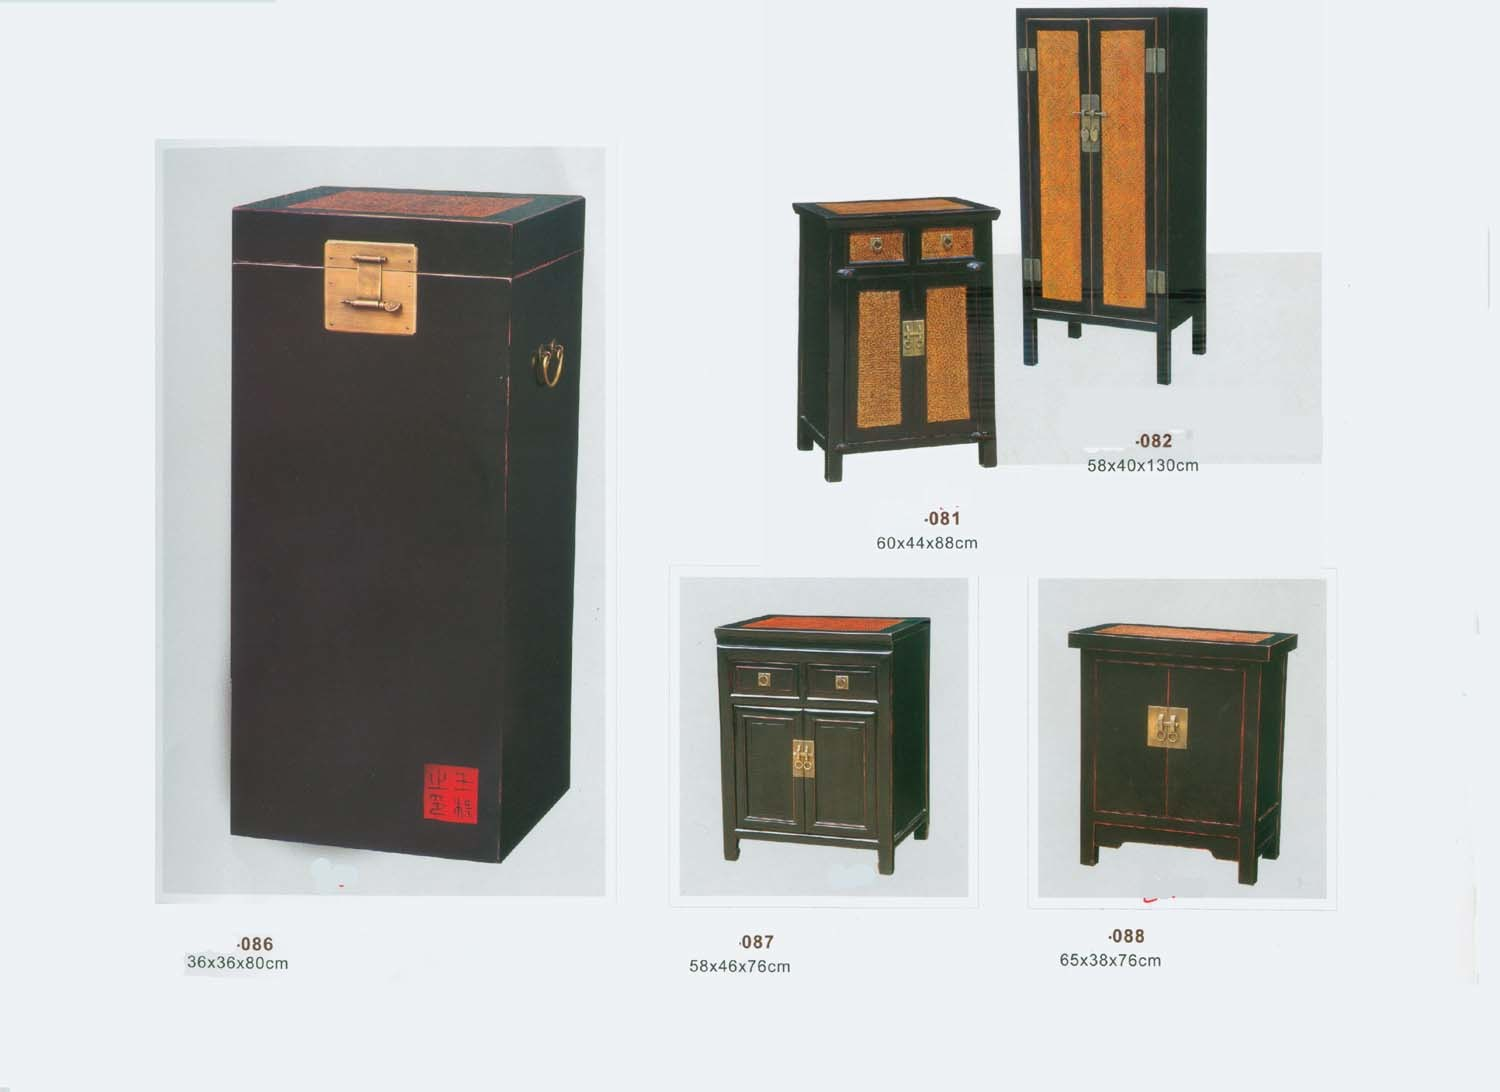 Chinese reproduction furniture small cabinets chinese for Reproduction kitchen cabinets